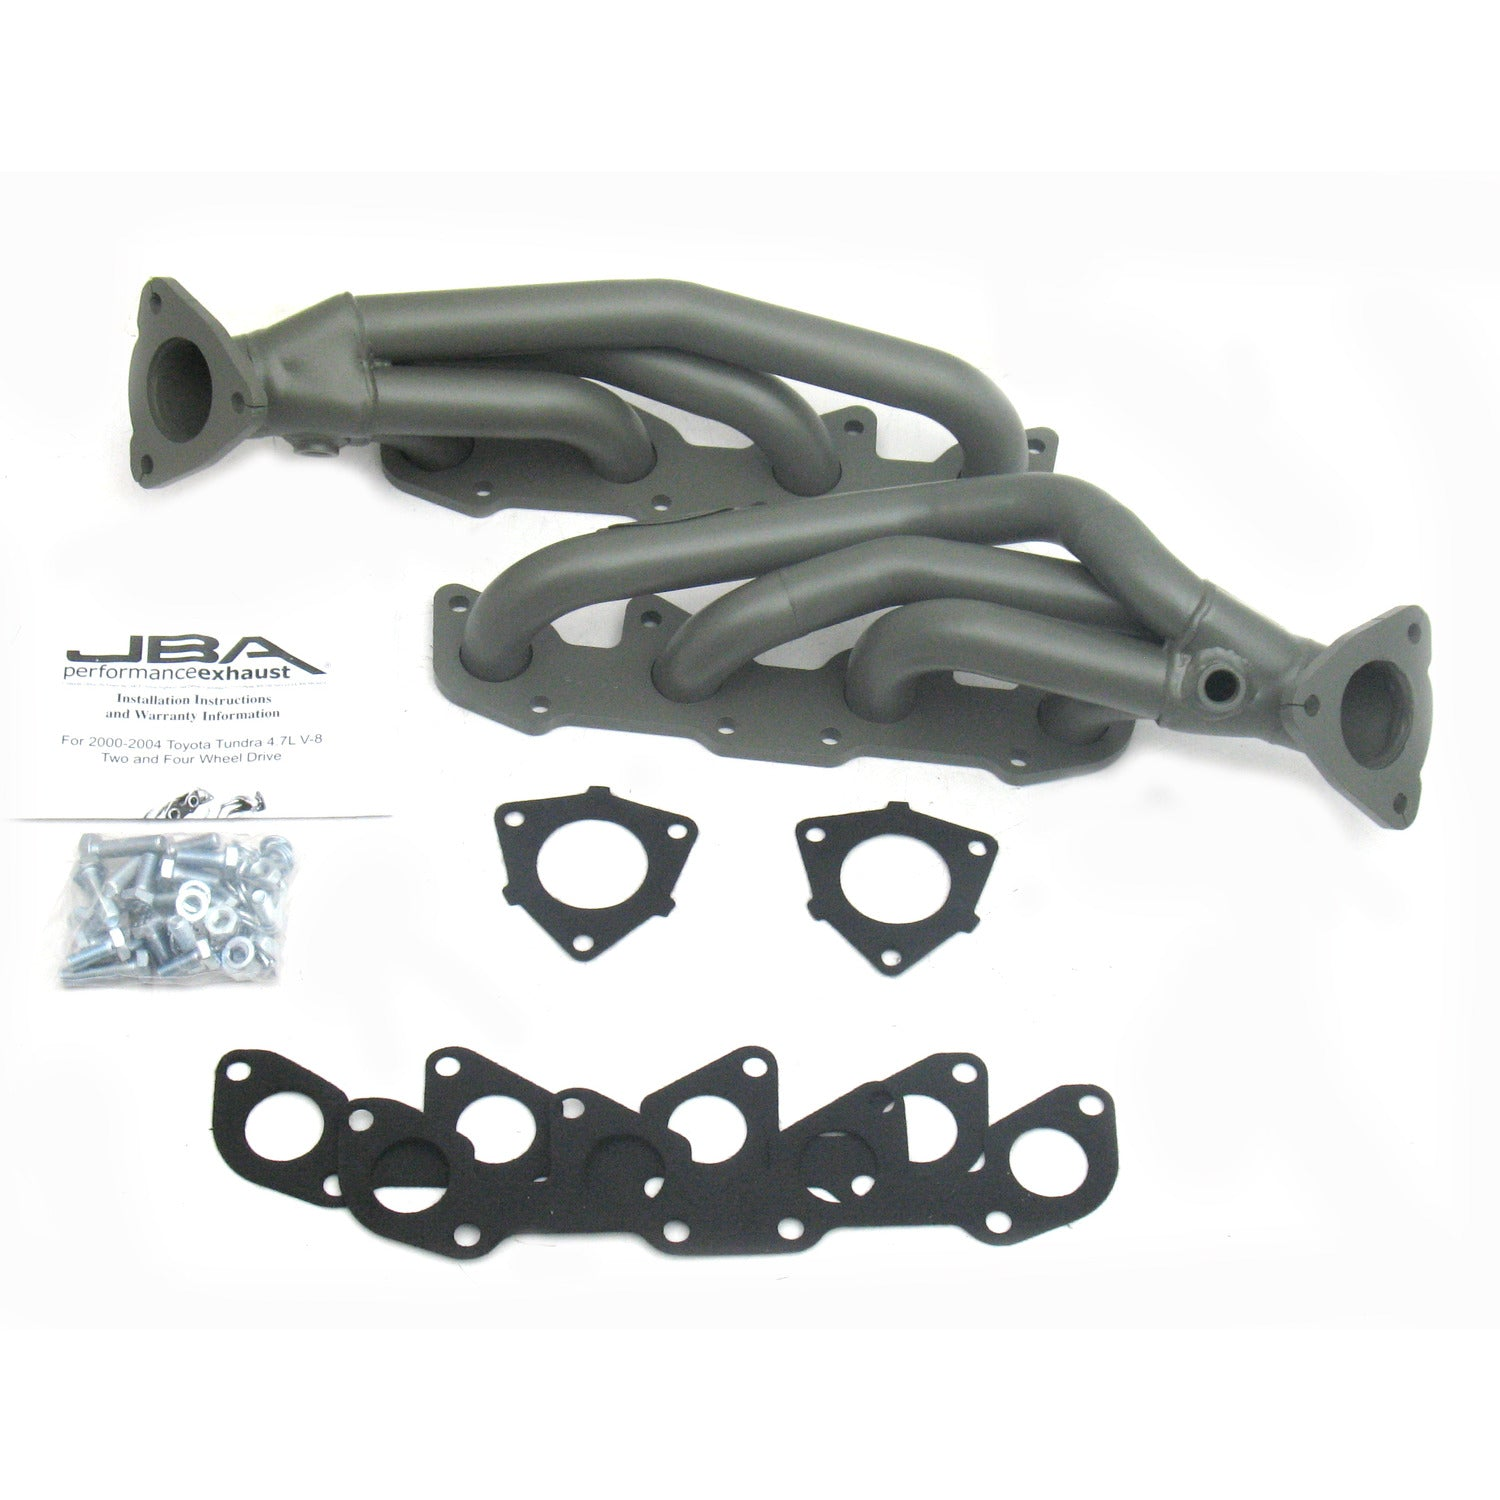 "JBA Performance Exhaust 2010SJT 1 1/2"" Header Shorty Stainless Steel 00-04 Tundra/Sequoia 4.7L Titanium Ceramic"